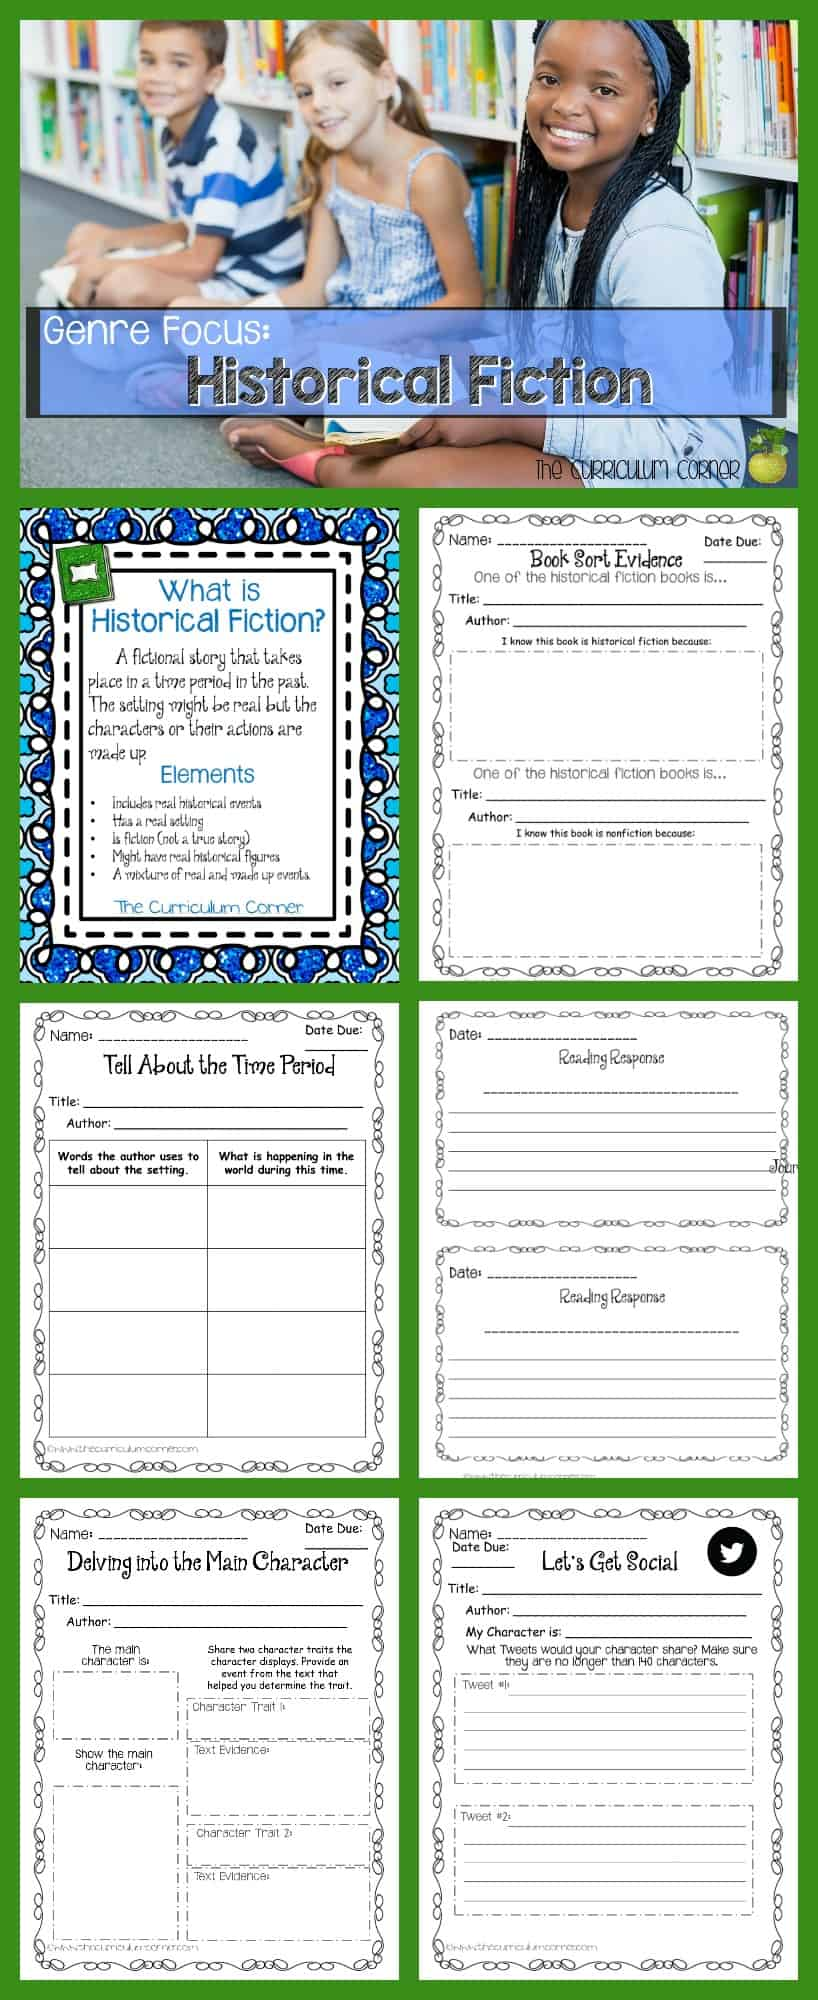 Help your students begin to explore historical fiction with this collection of resources that are just right for intermediate classrooms!